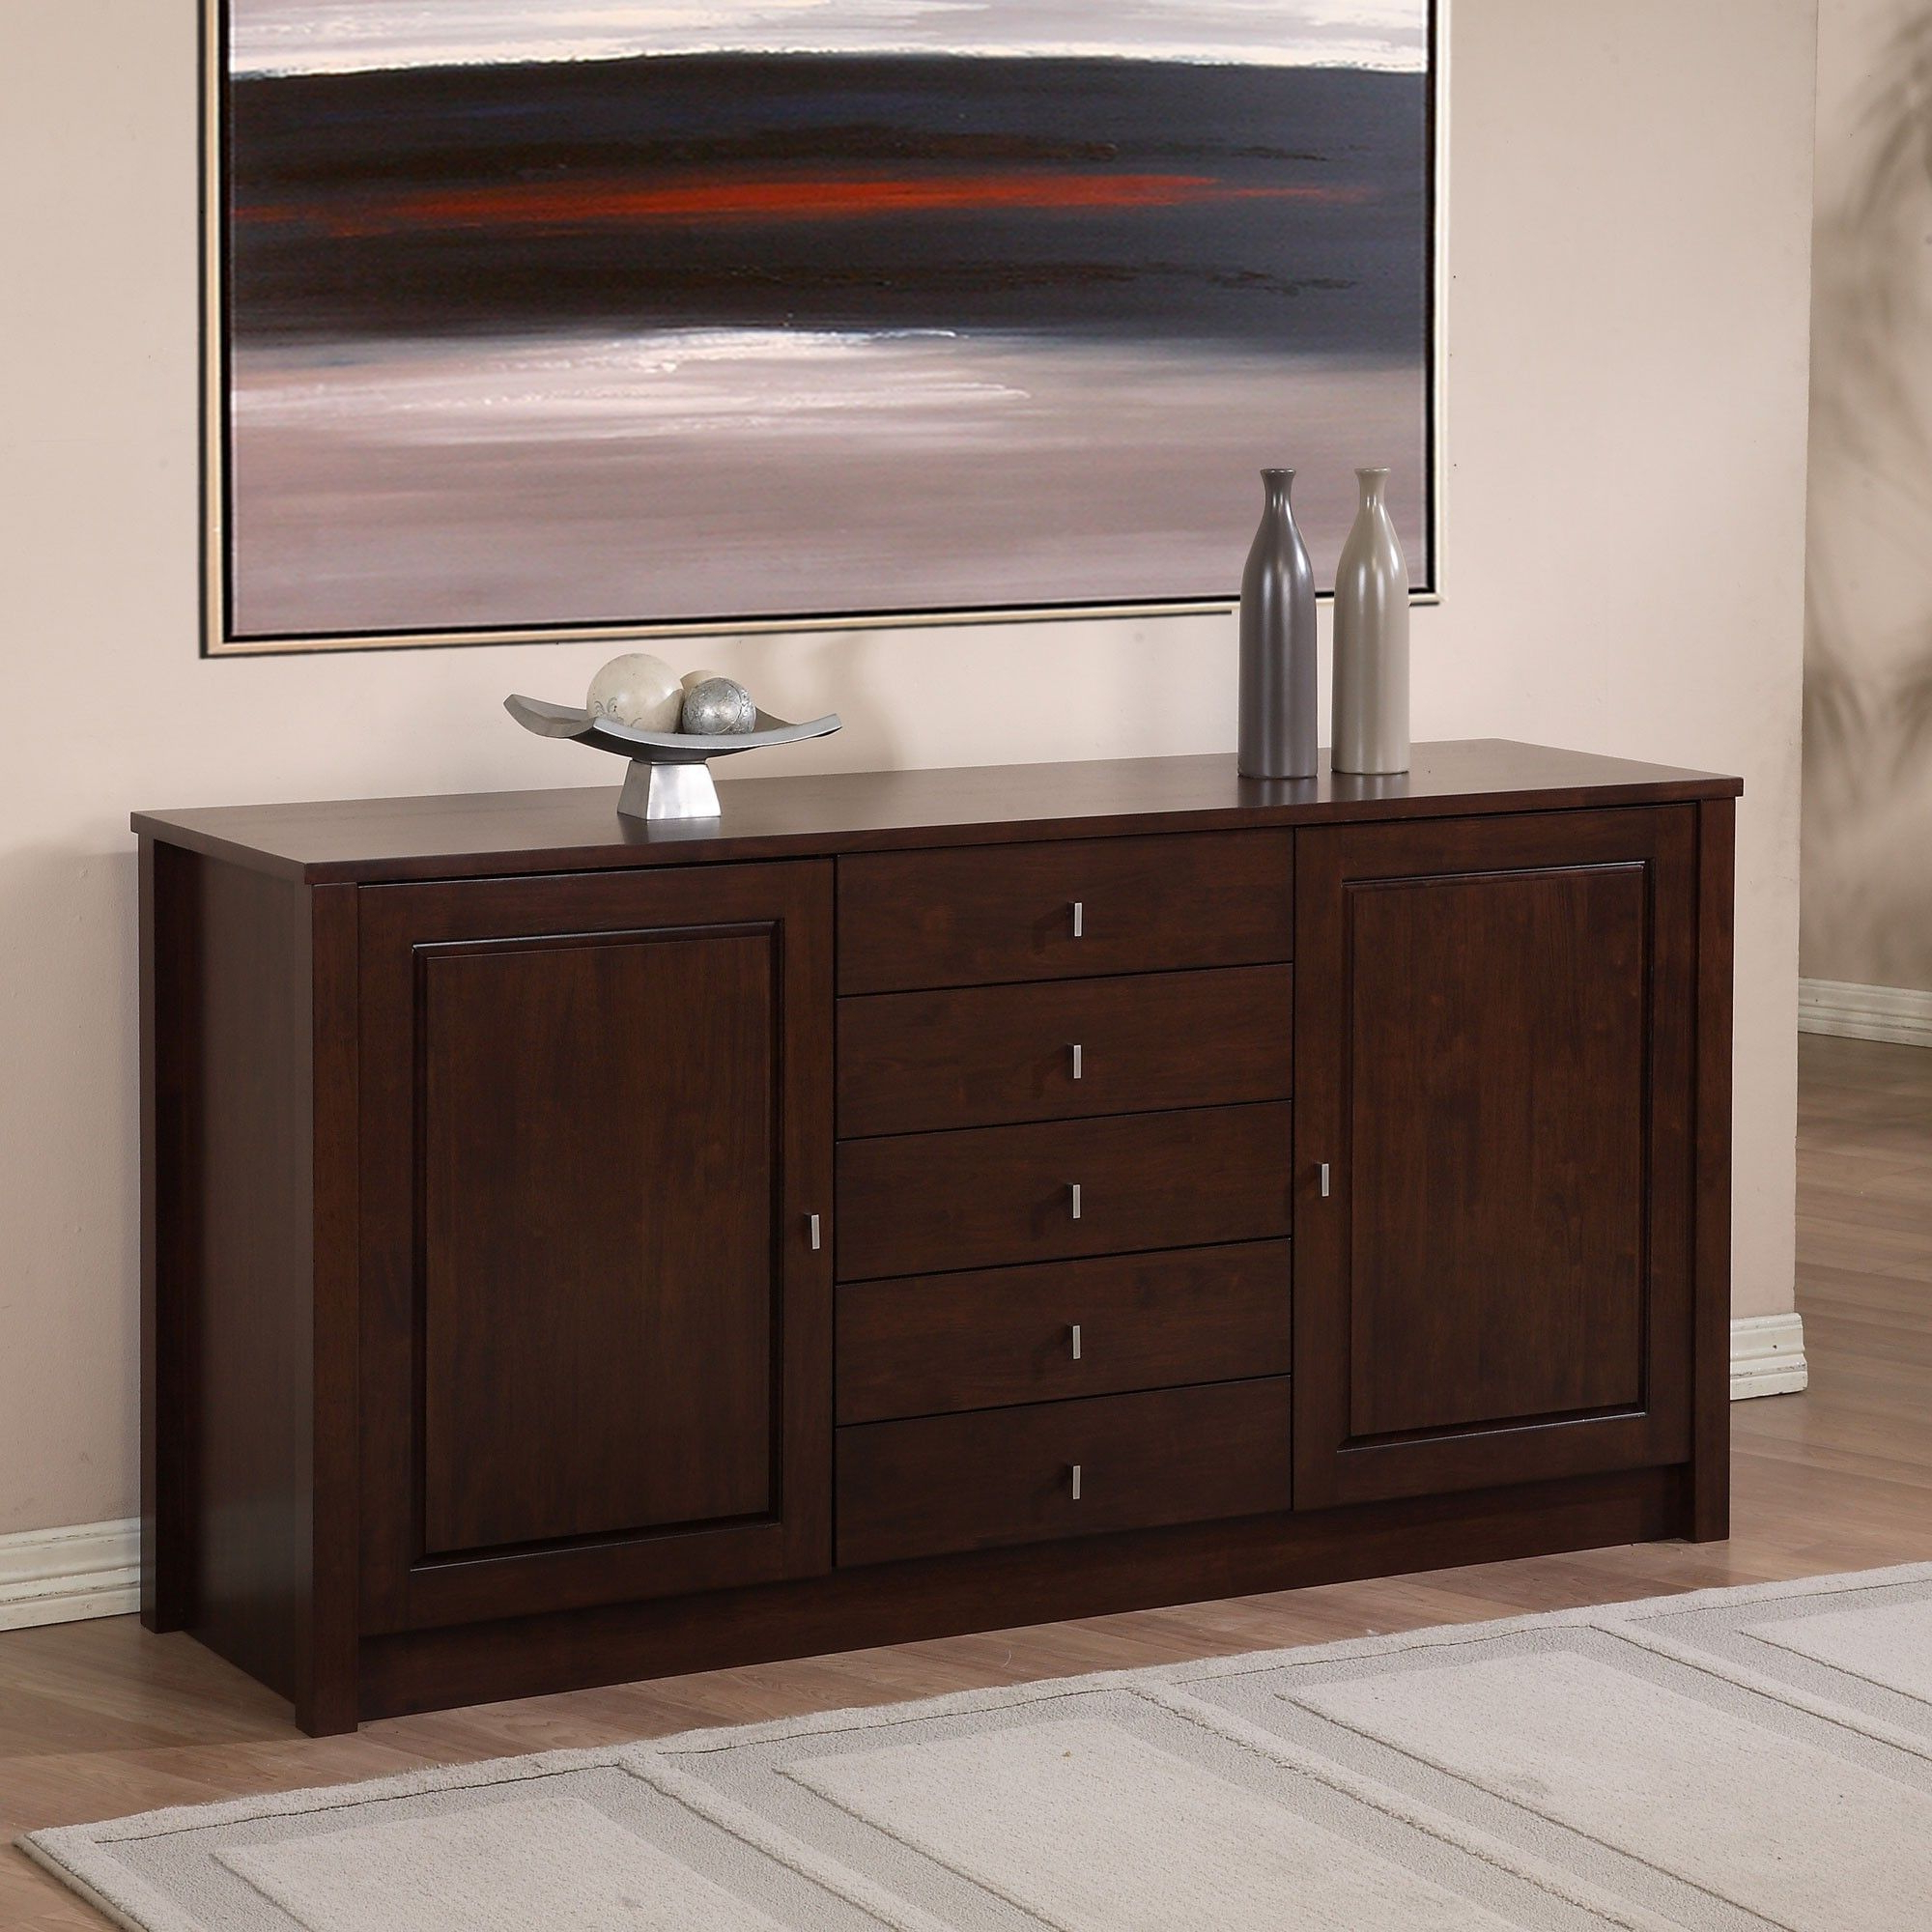 2020 With Nickel Finish Hardware Accenting A Unique Wenge Finish Intended For Tribeca Sideboards (Gallery 18 of 20)